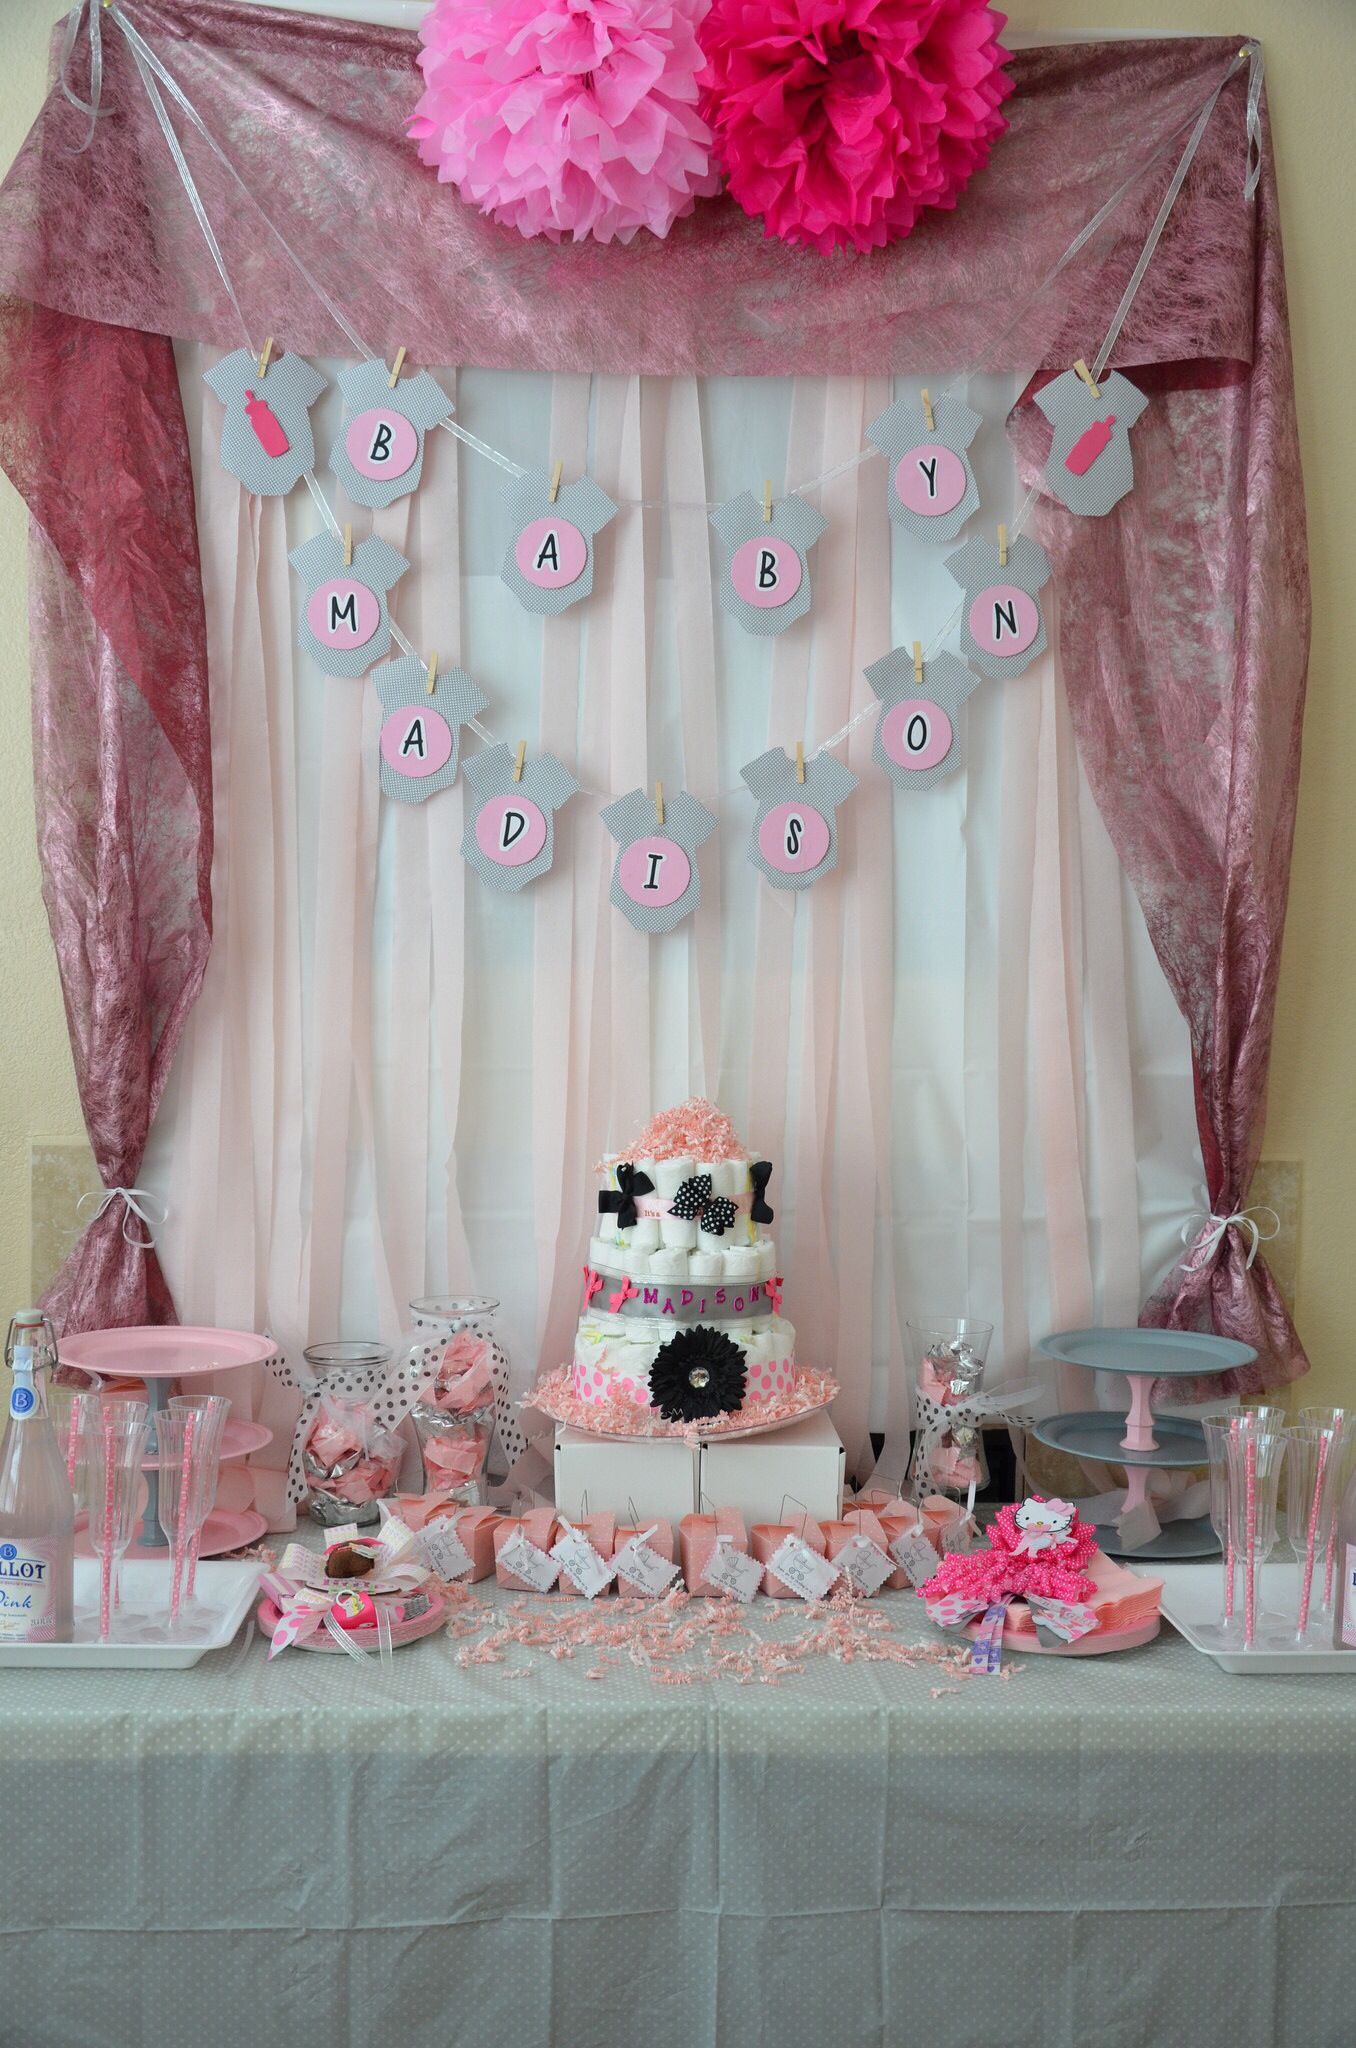 the baby shower center table i created for my little bundle of joy